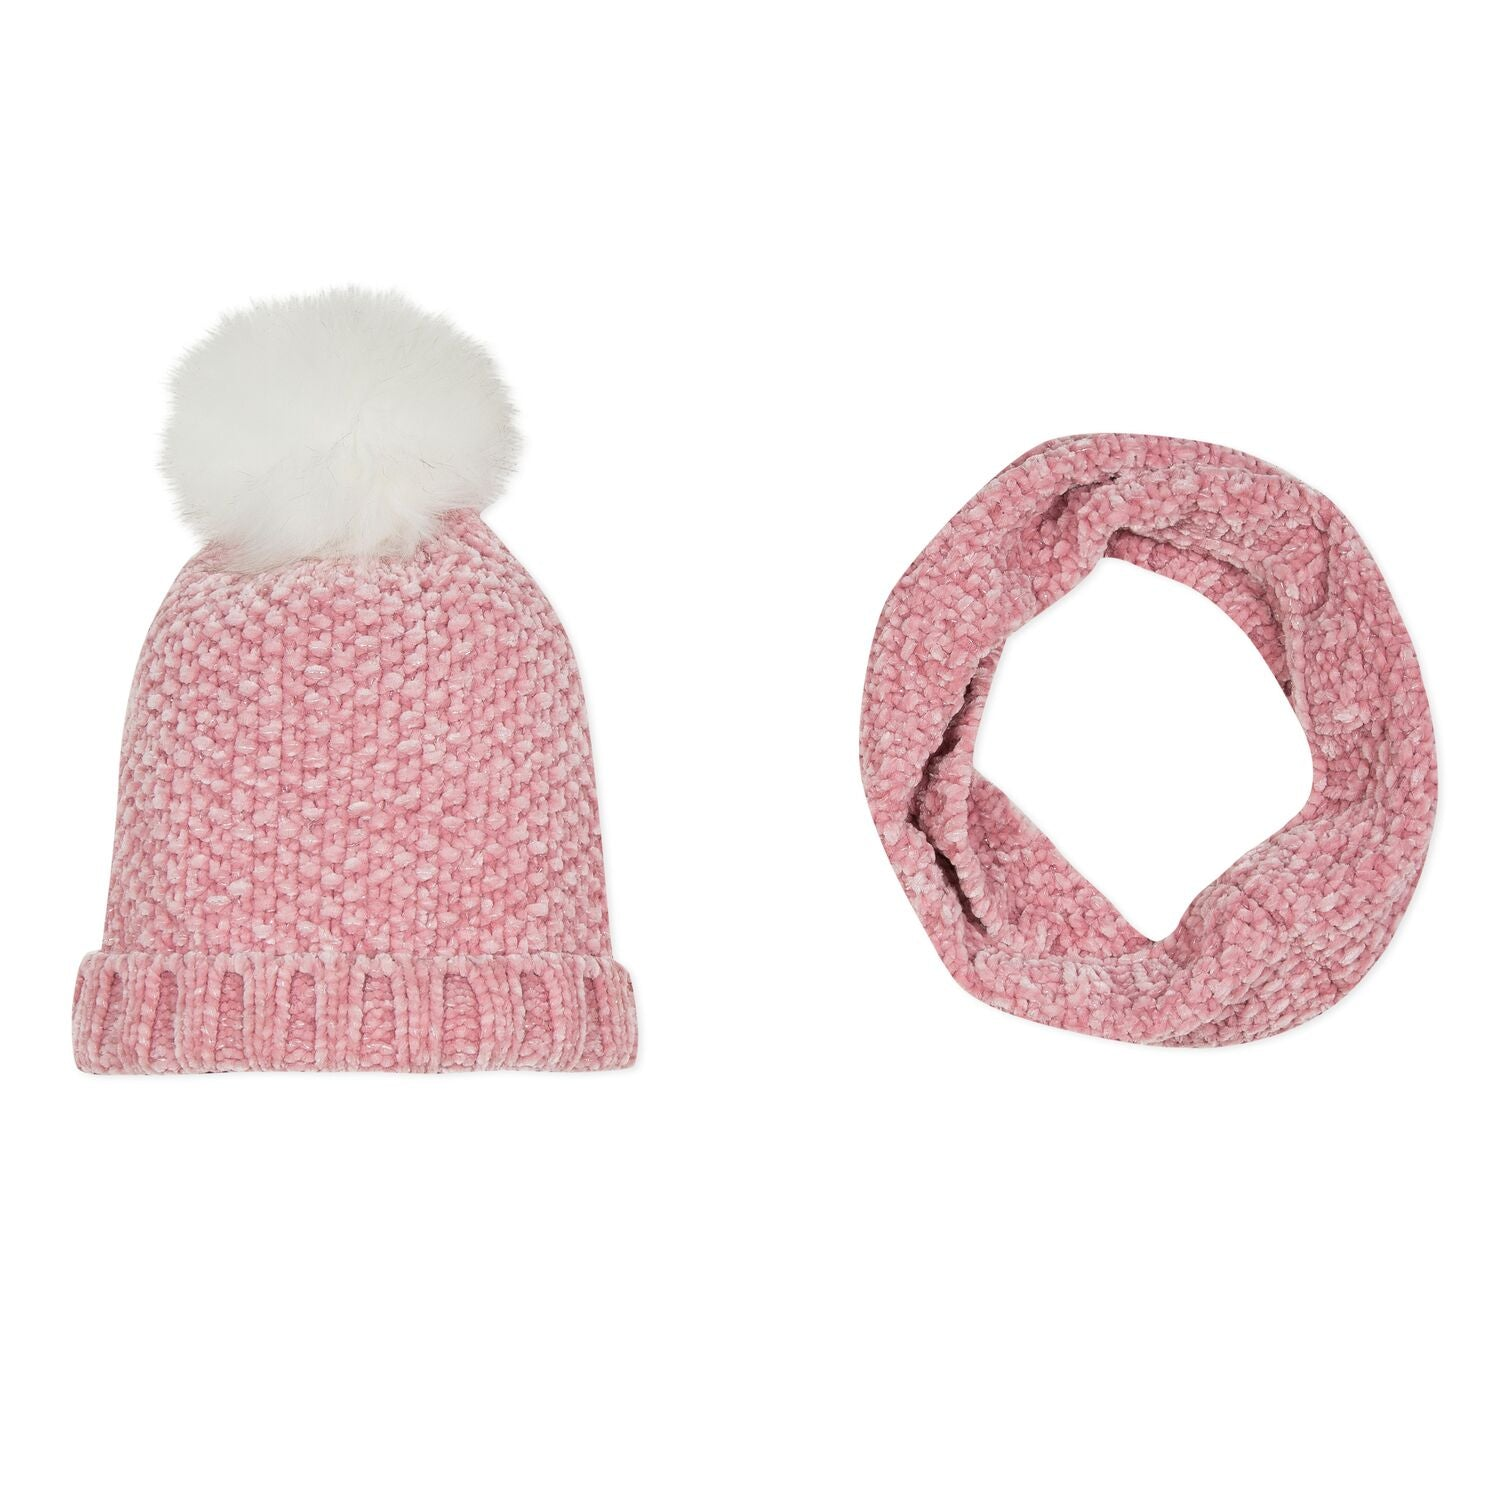 3P90014 3 Pommes Hat & Snood Set